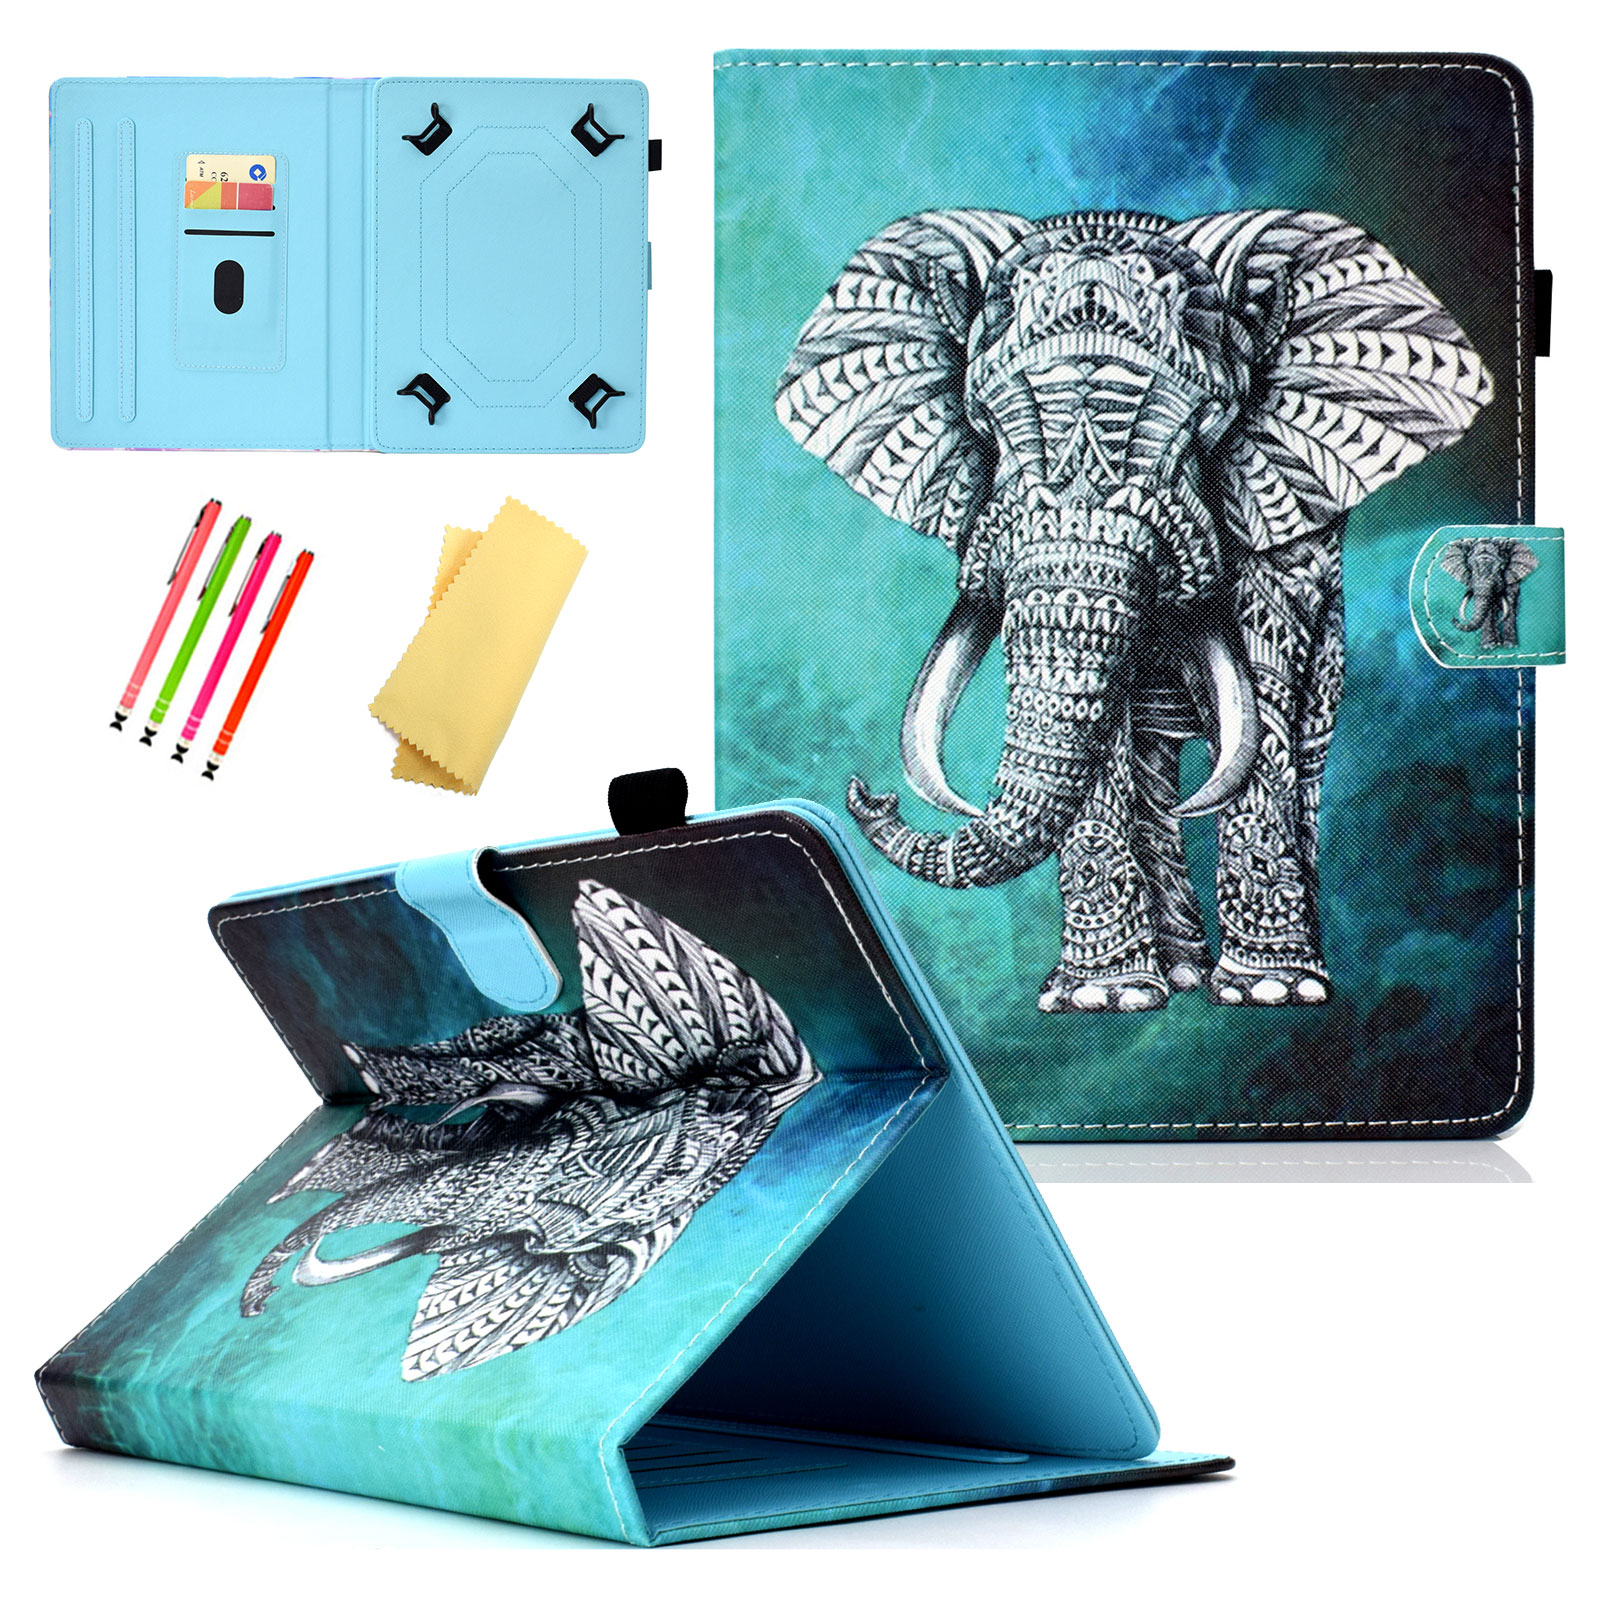 8.0 inch Tablet Case, Goodest Shockproof Kids Universal Stand Case Cover for Apple iPad Mini 1 2 3 4/ Tab A 8.0/ Tab E 8.0/ Fire HD 8/ Kindle Fire 7/ LG G Pad and More All 7.0 to 8.0 inch Tablet